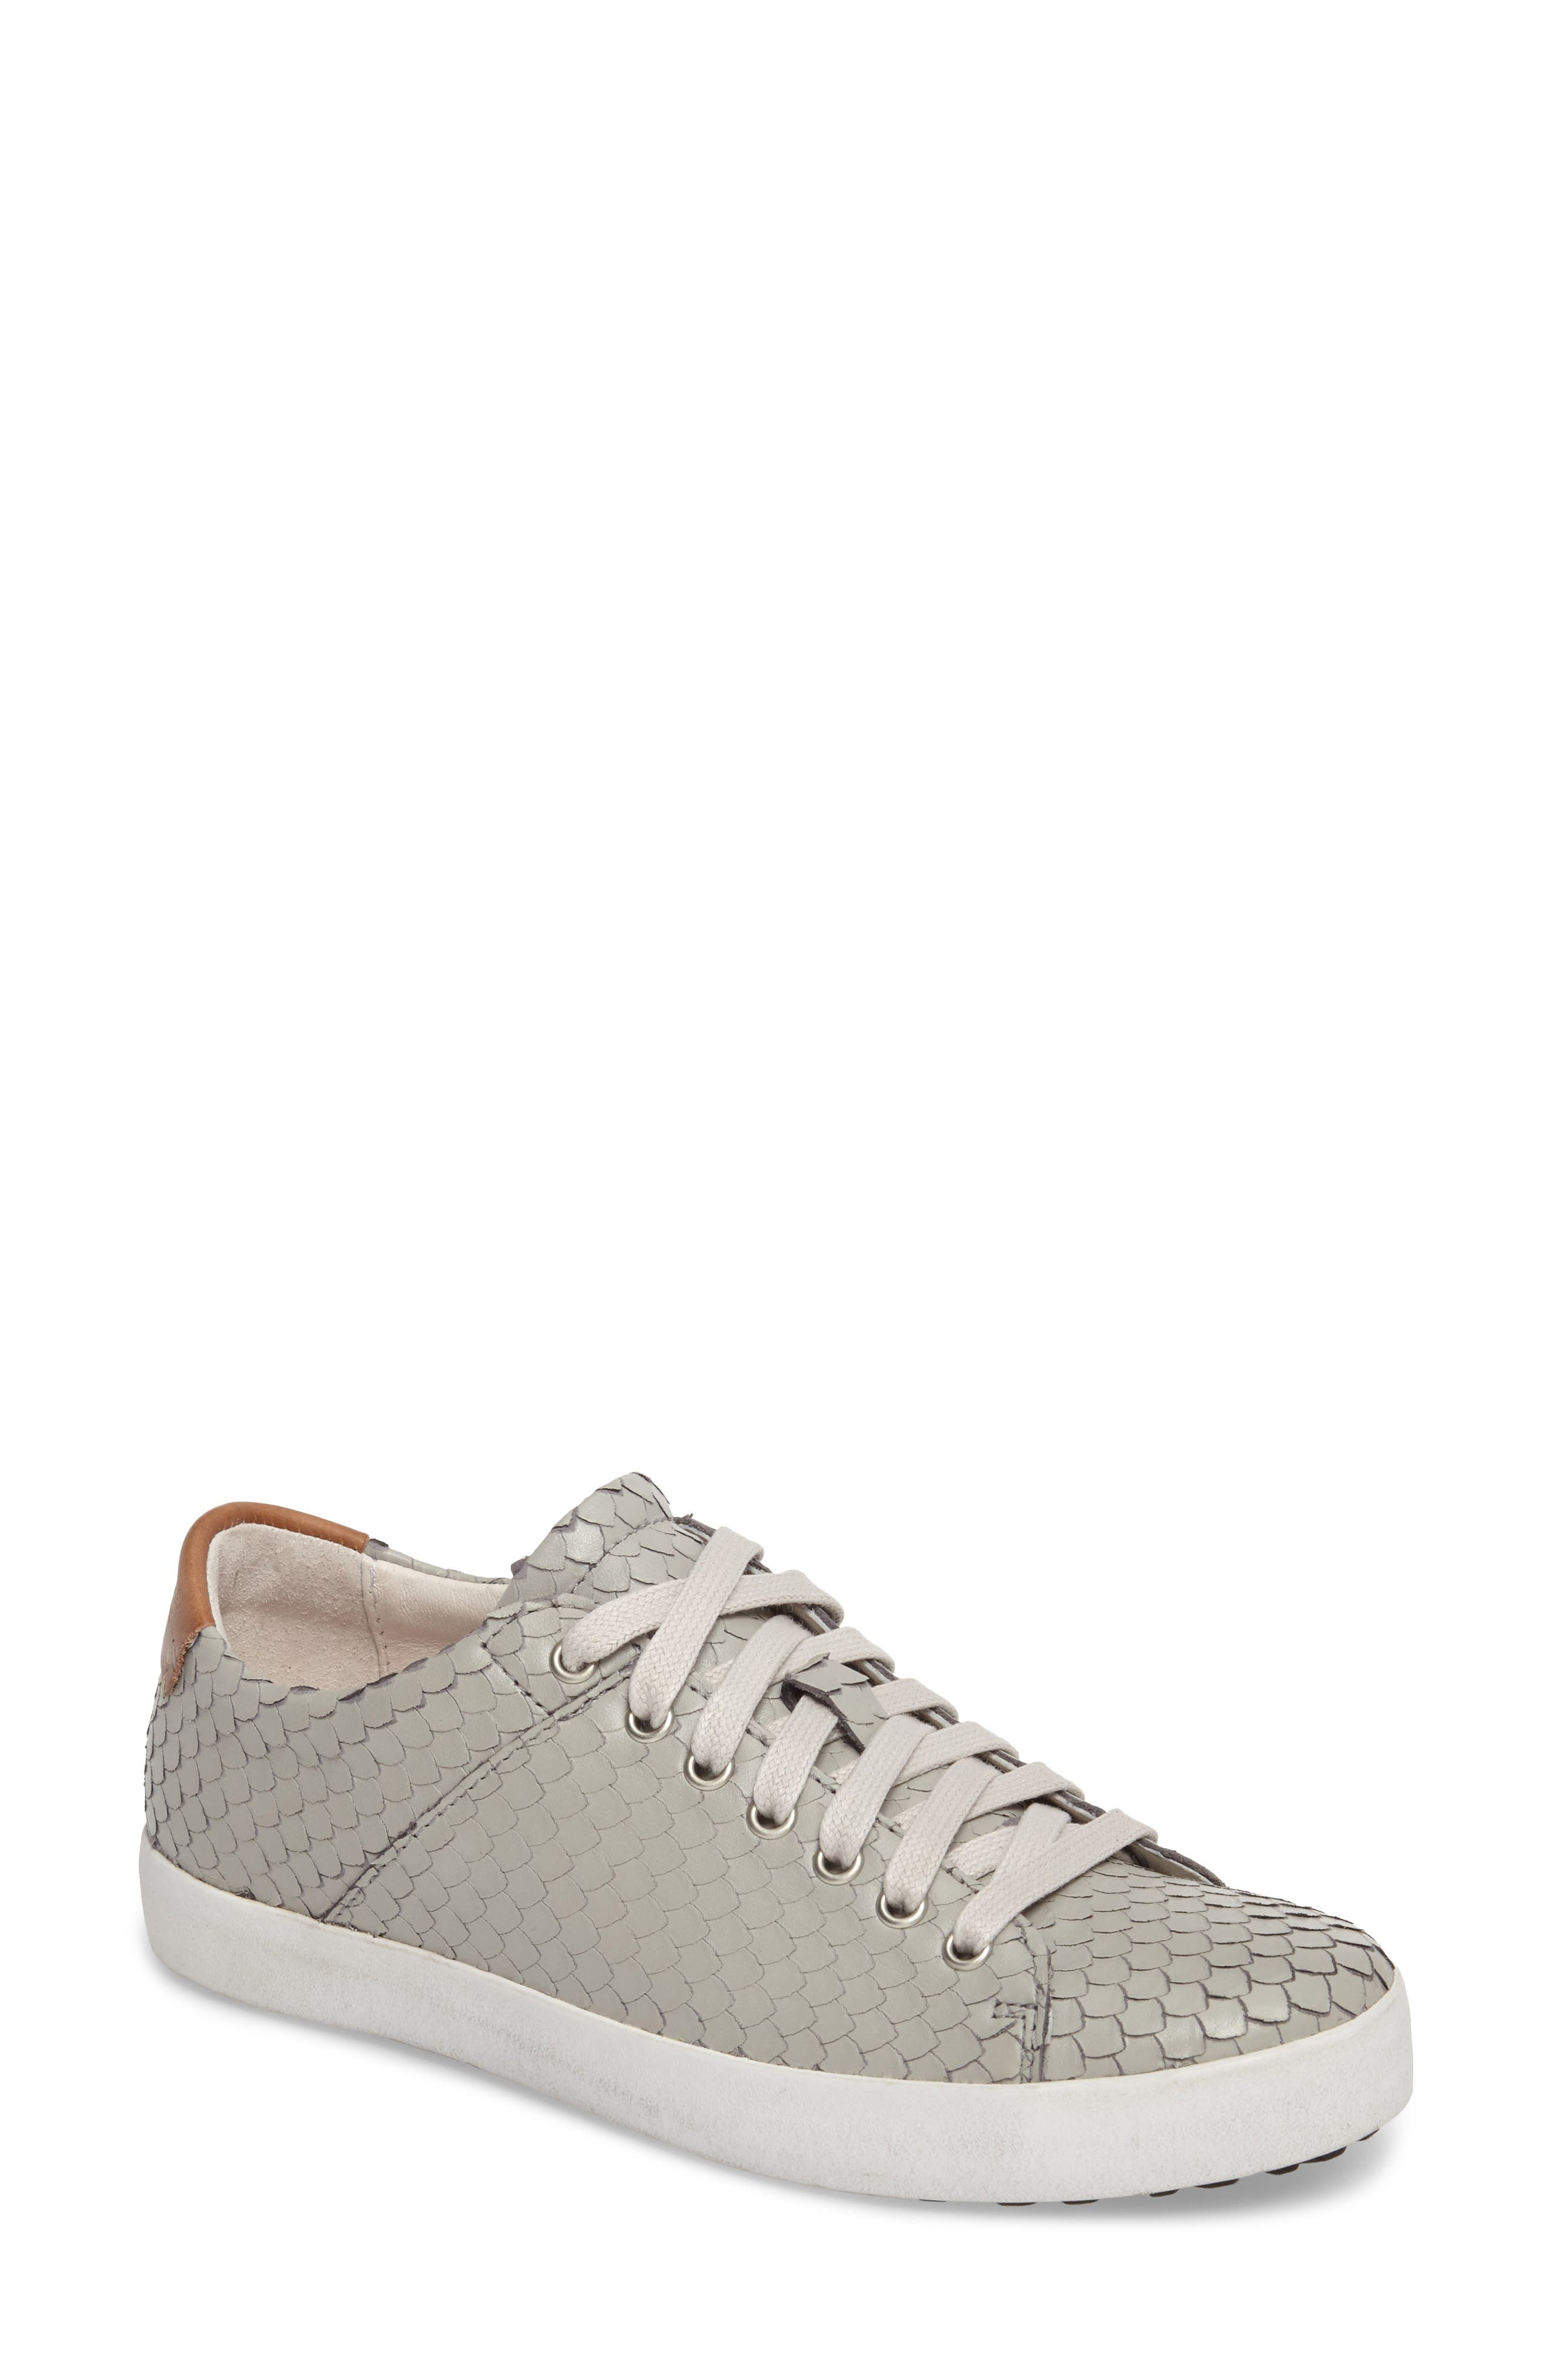 OL25 Sneaker,                             Main thumbnail 1, color,                             Grey Leather